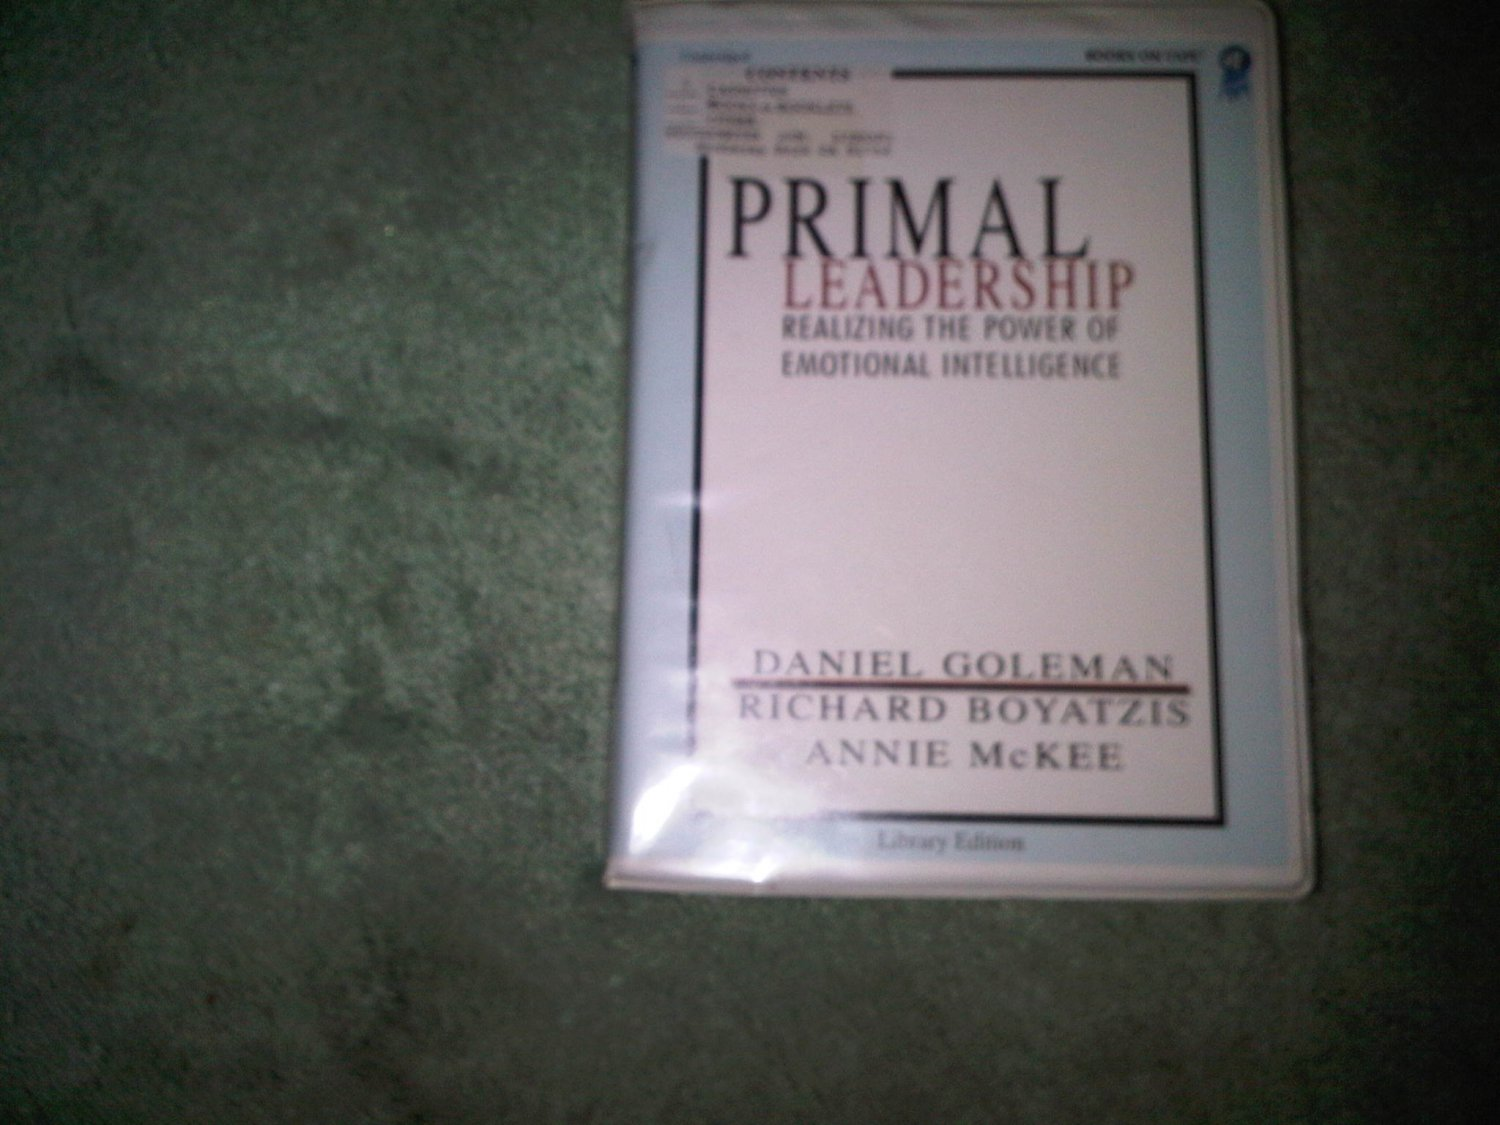 PRIMAL LEADERSHIP POWER EMOTIONAL INTELLIGENCE casette audio book books home education SELF-HELP